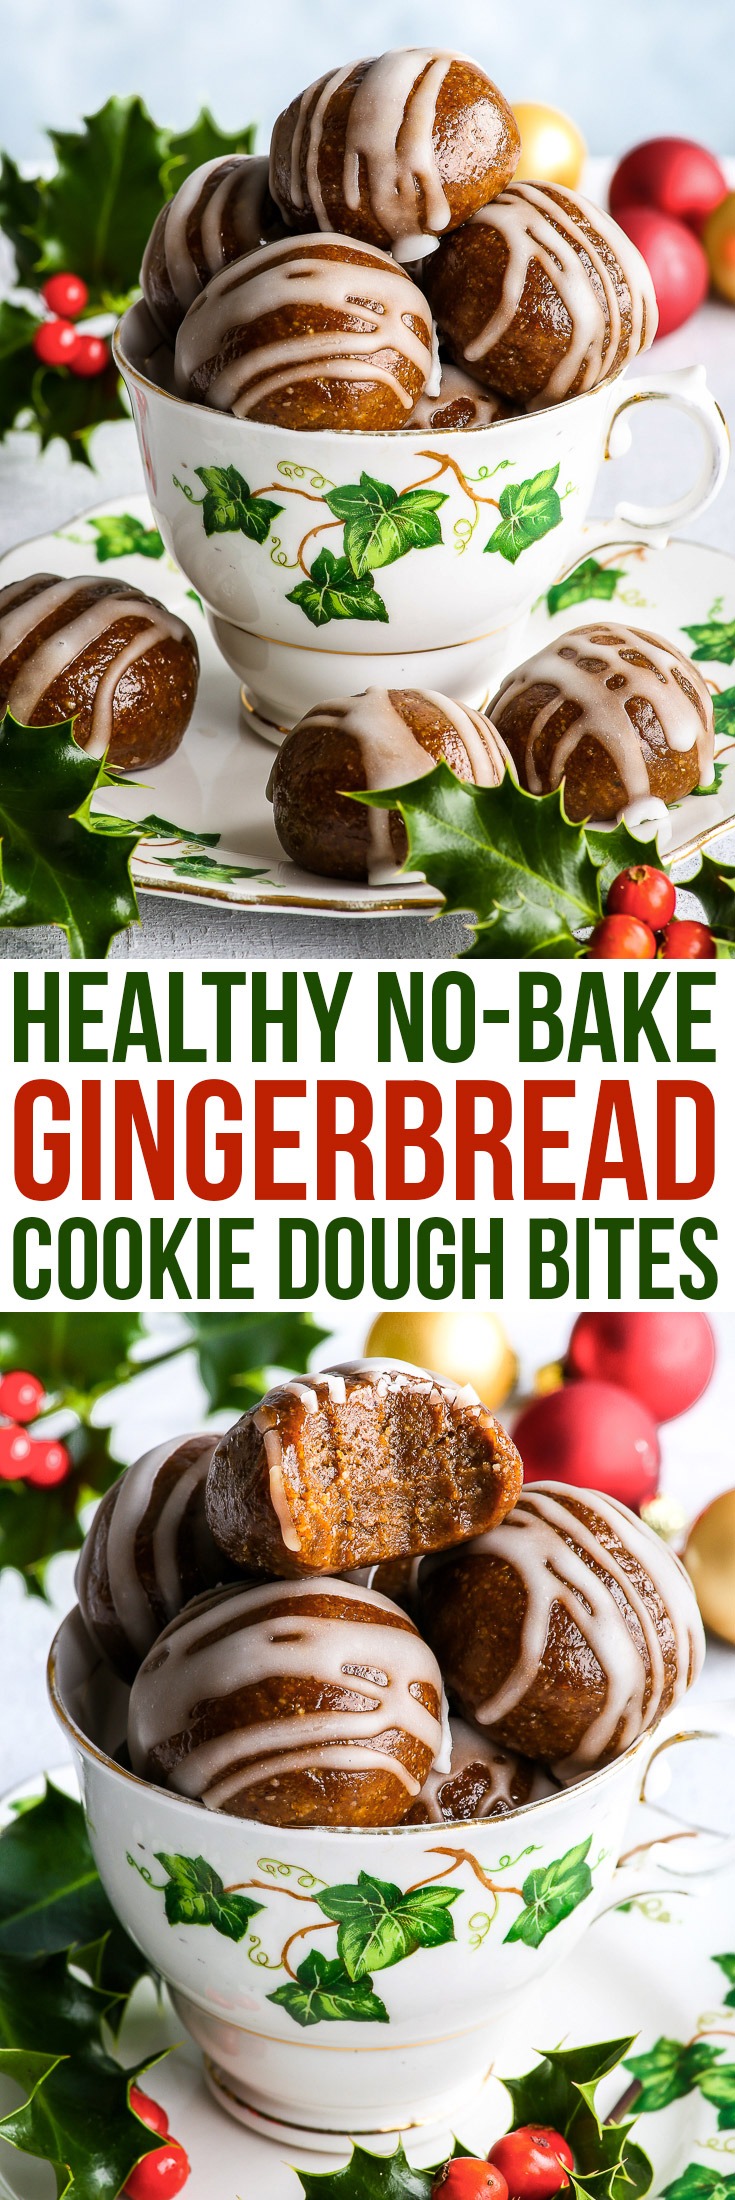 Healthy No-Bake Gingerbread Cookie Dough Bites {gluten, dairy, egg, peanut, soy & refined sugar free, vegan, paleo} - These no-bake gingerbread cookie dough bites are the perfect healthy Christmas dessert or snack. Easy and quick to make, they take only 15 minutes to prepare. And while they may be healthy – they are also super rich, buttery, sweet, aromatic and utterly decadent! (Plus, they make the most amazing edible DIY Christmas gift!)